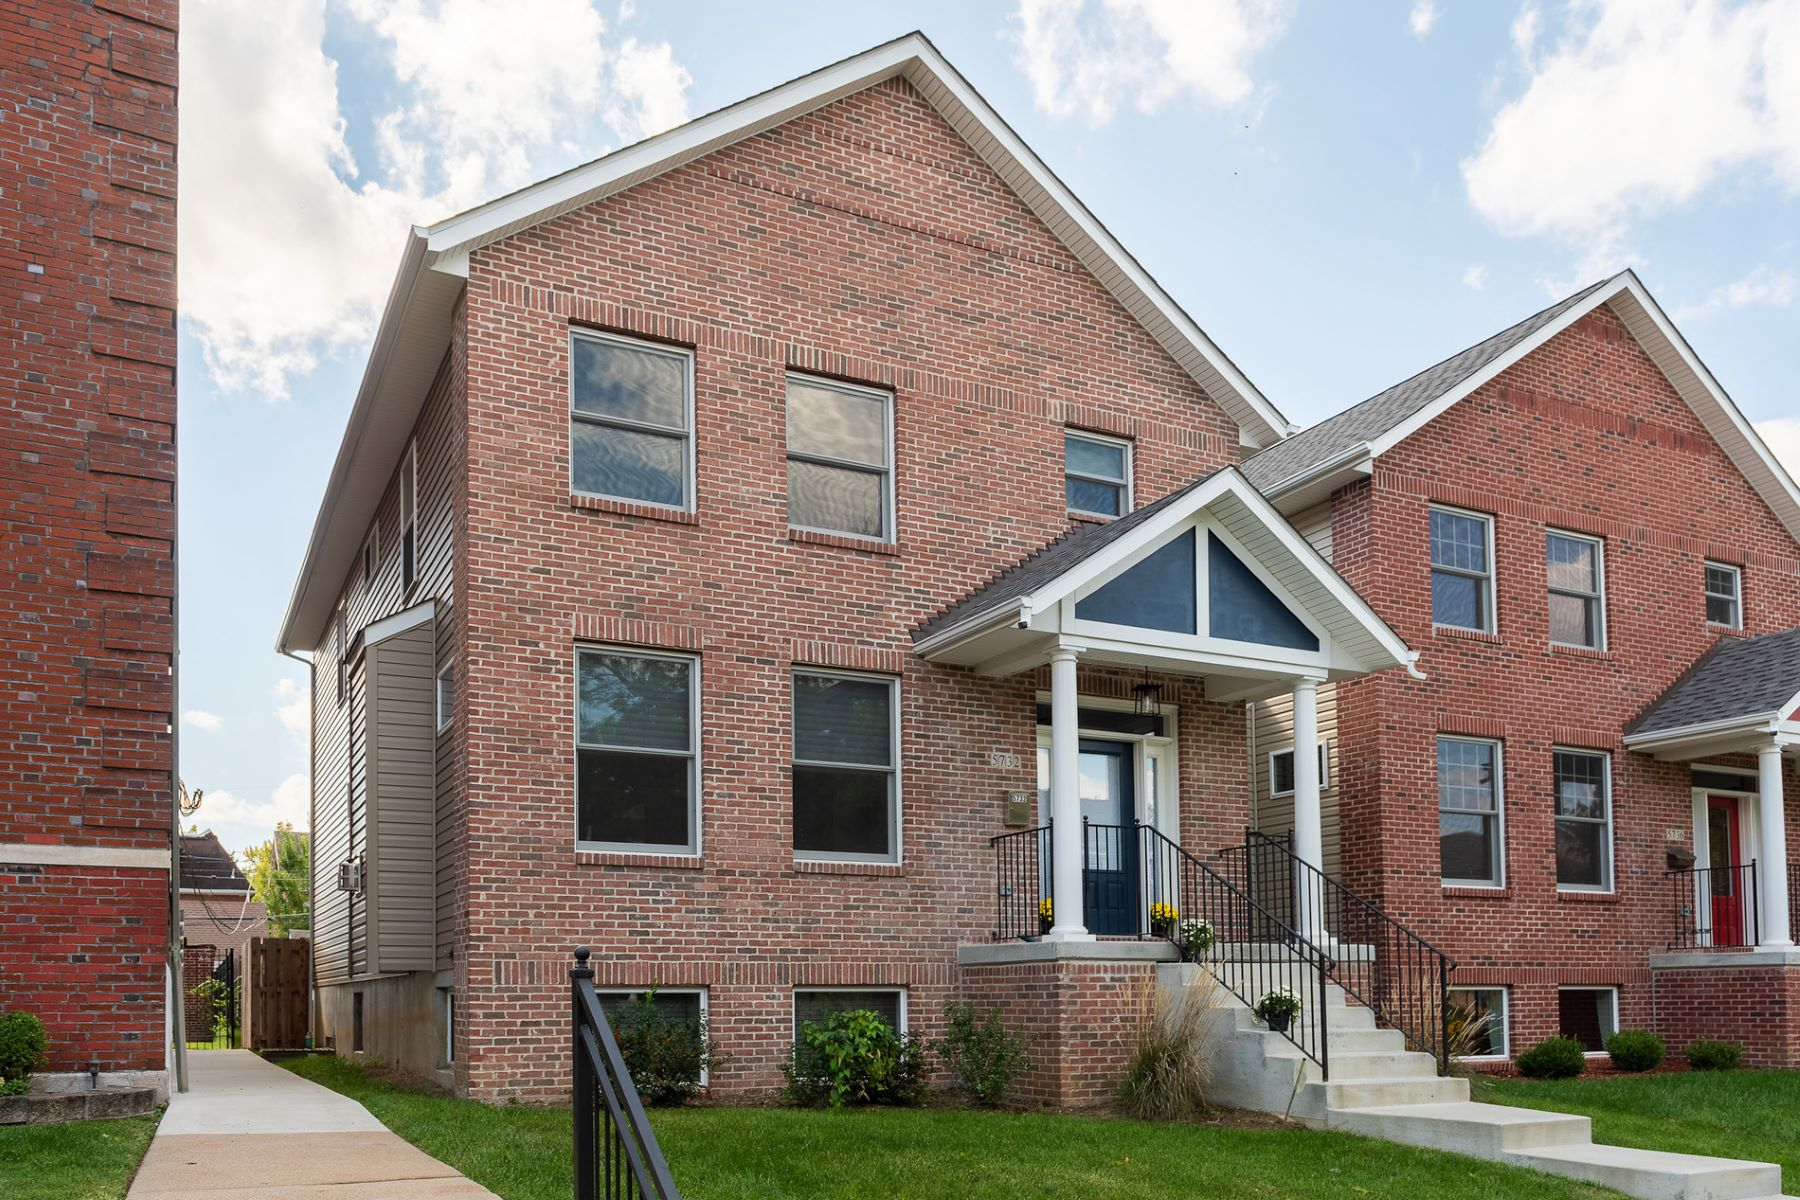 Single Family Home for Sale at Mcpherson Ave 5732 McPherson Ave St. Louis, Missouri 63105 United States